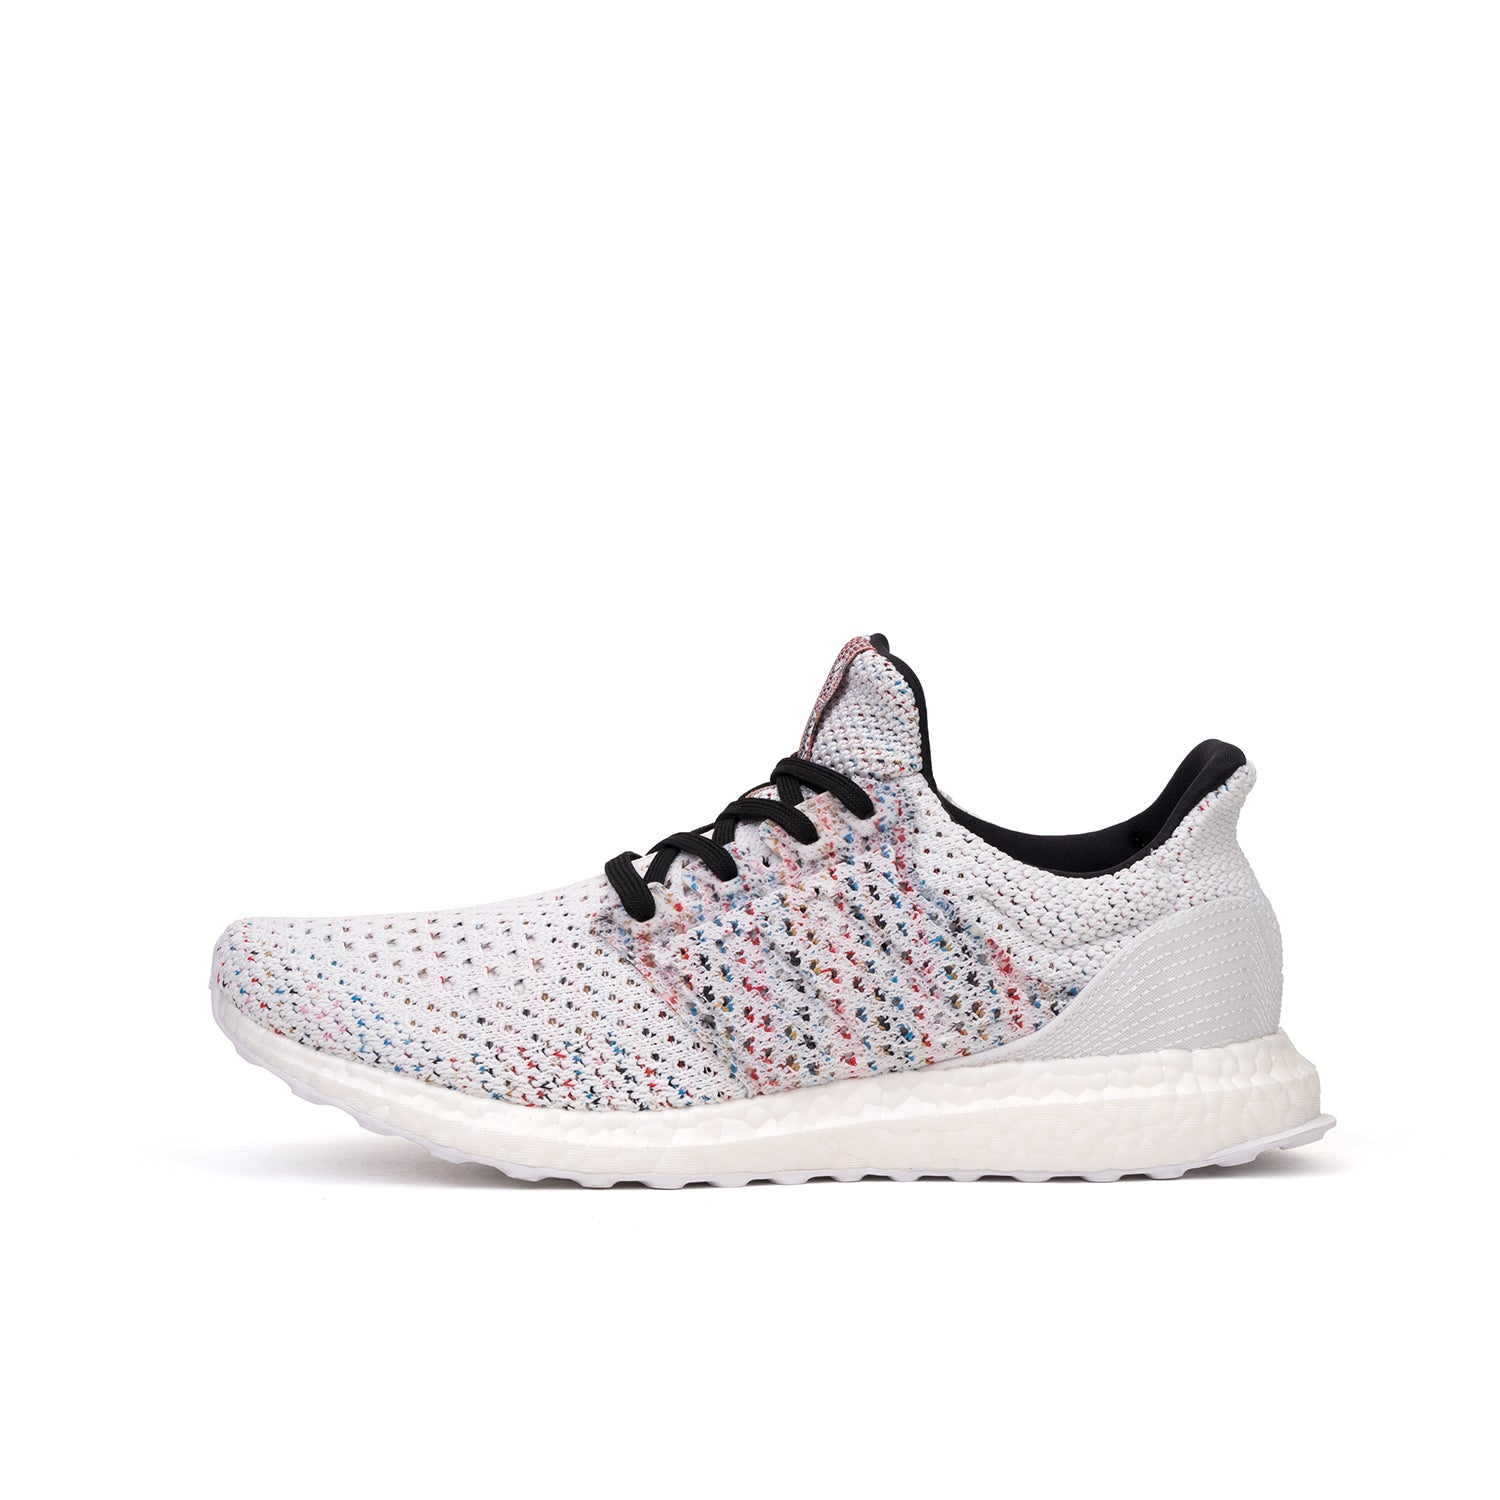 adidas x Missoni Ultra Boost Clima White / Active Red